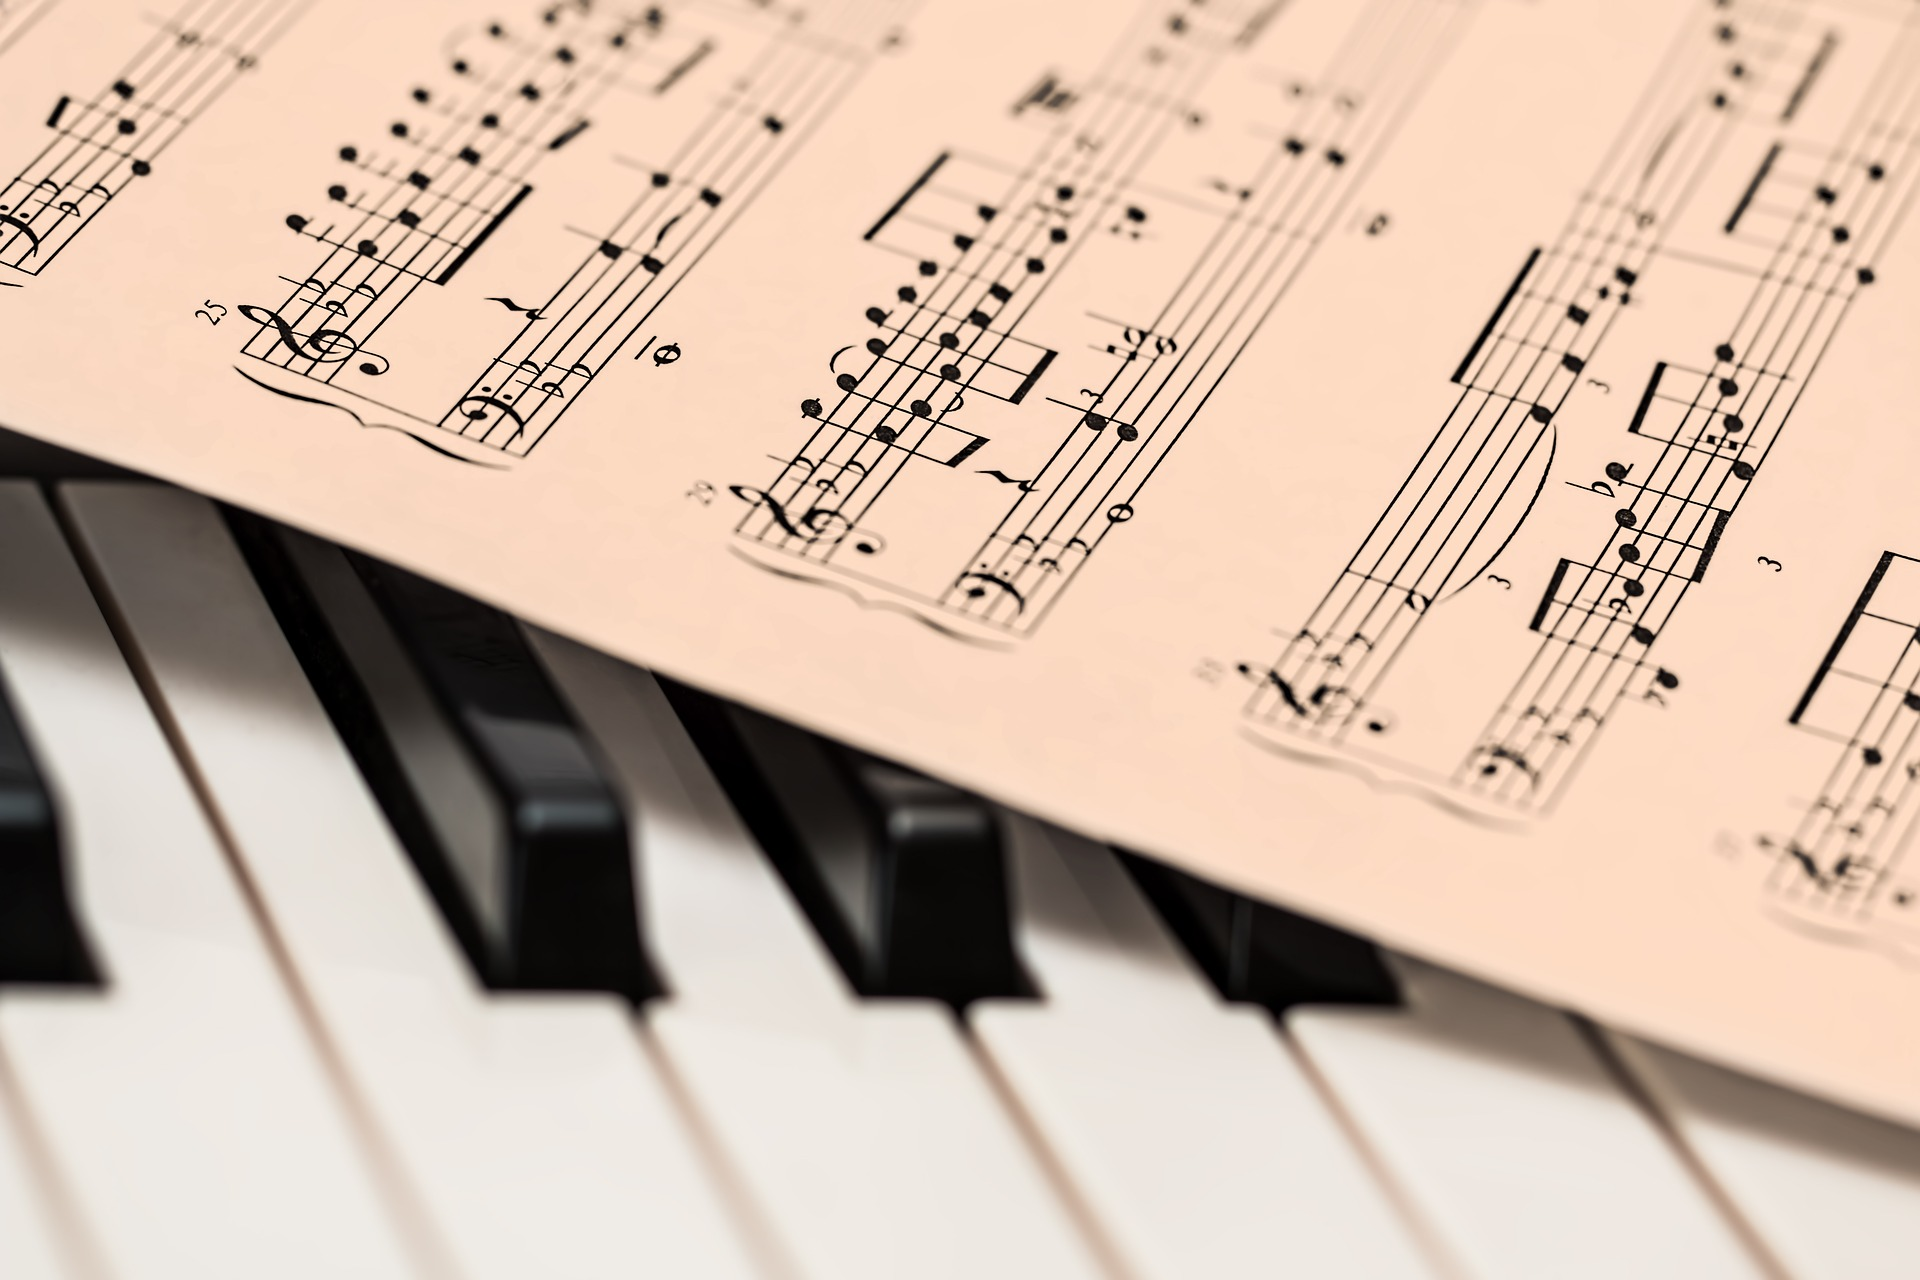 Picture of sheet music over piano keys